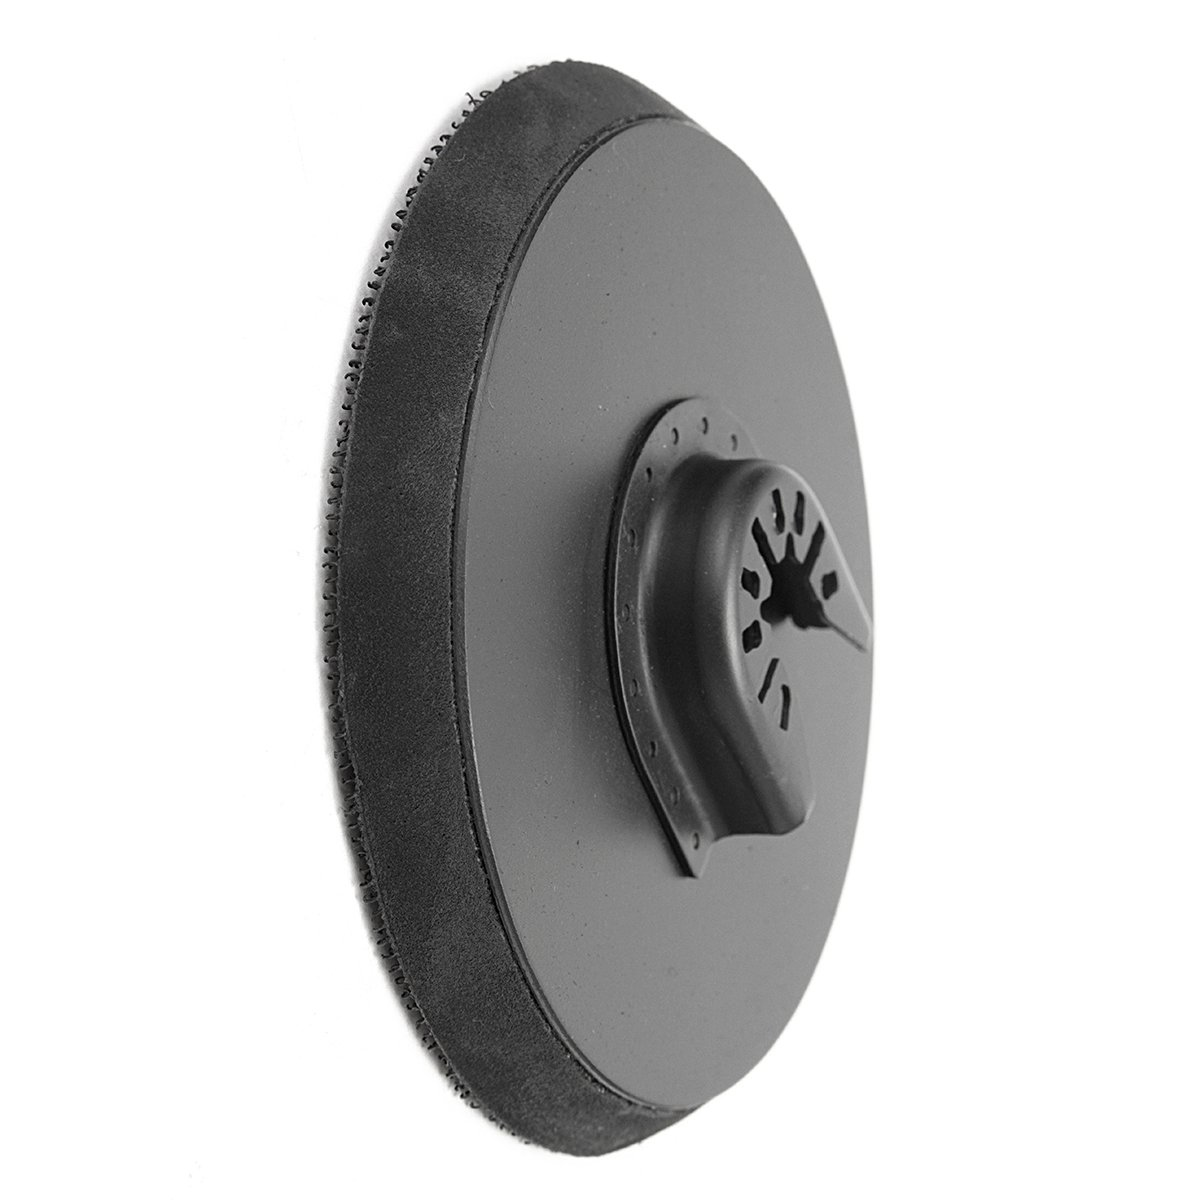 Pukido 115mm Grinding Saw Blade Cutting Discs Tool